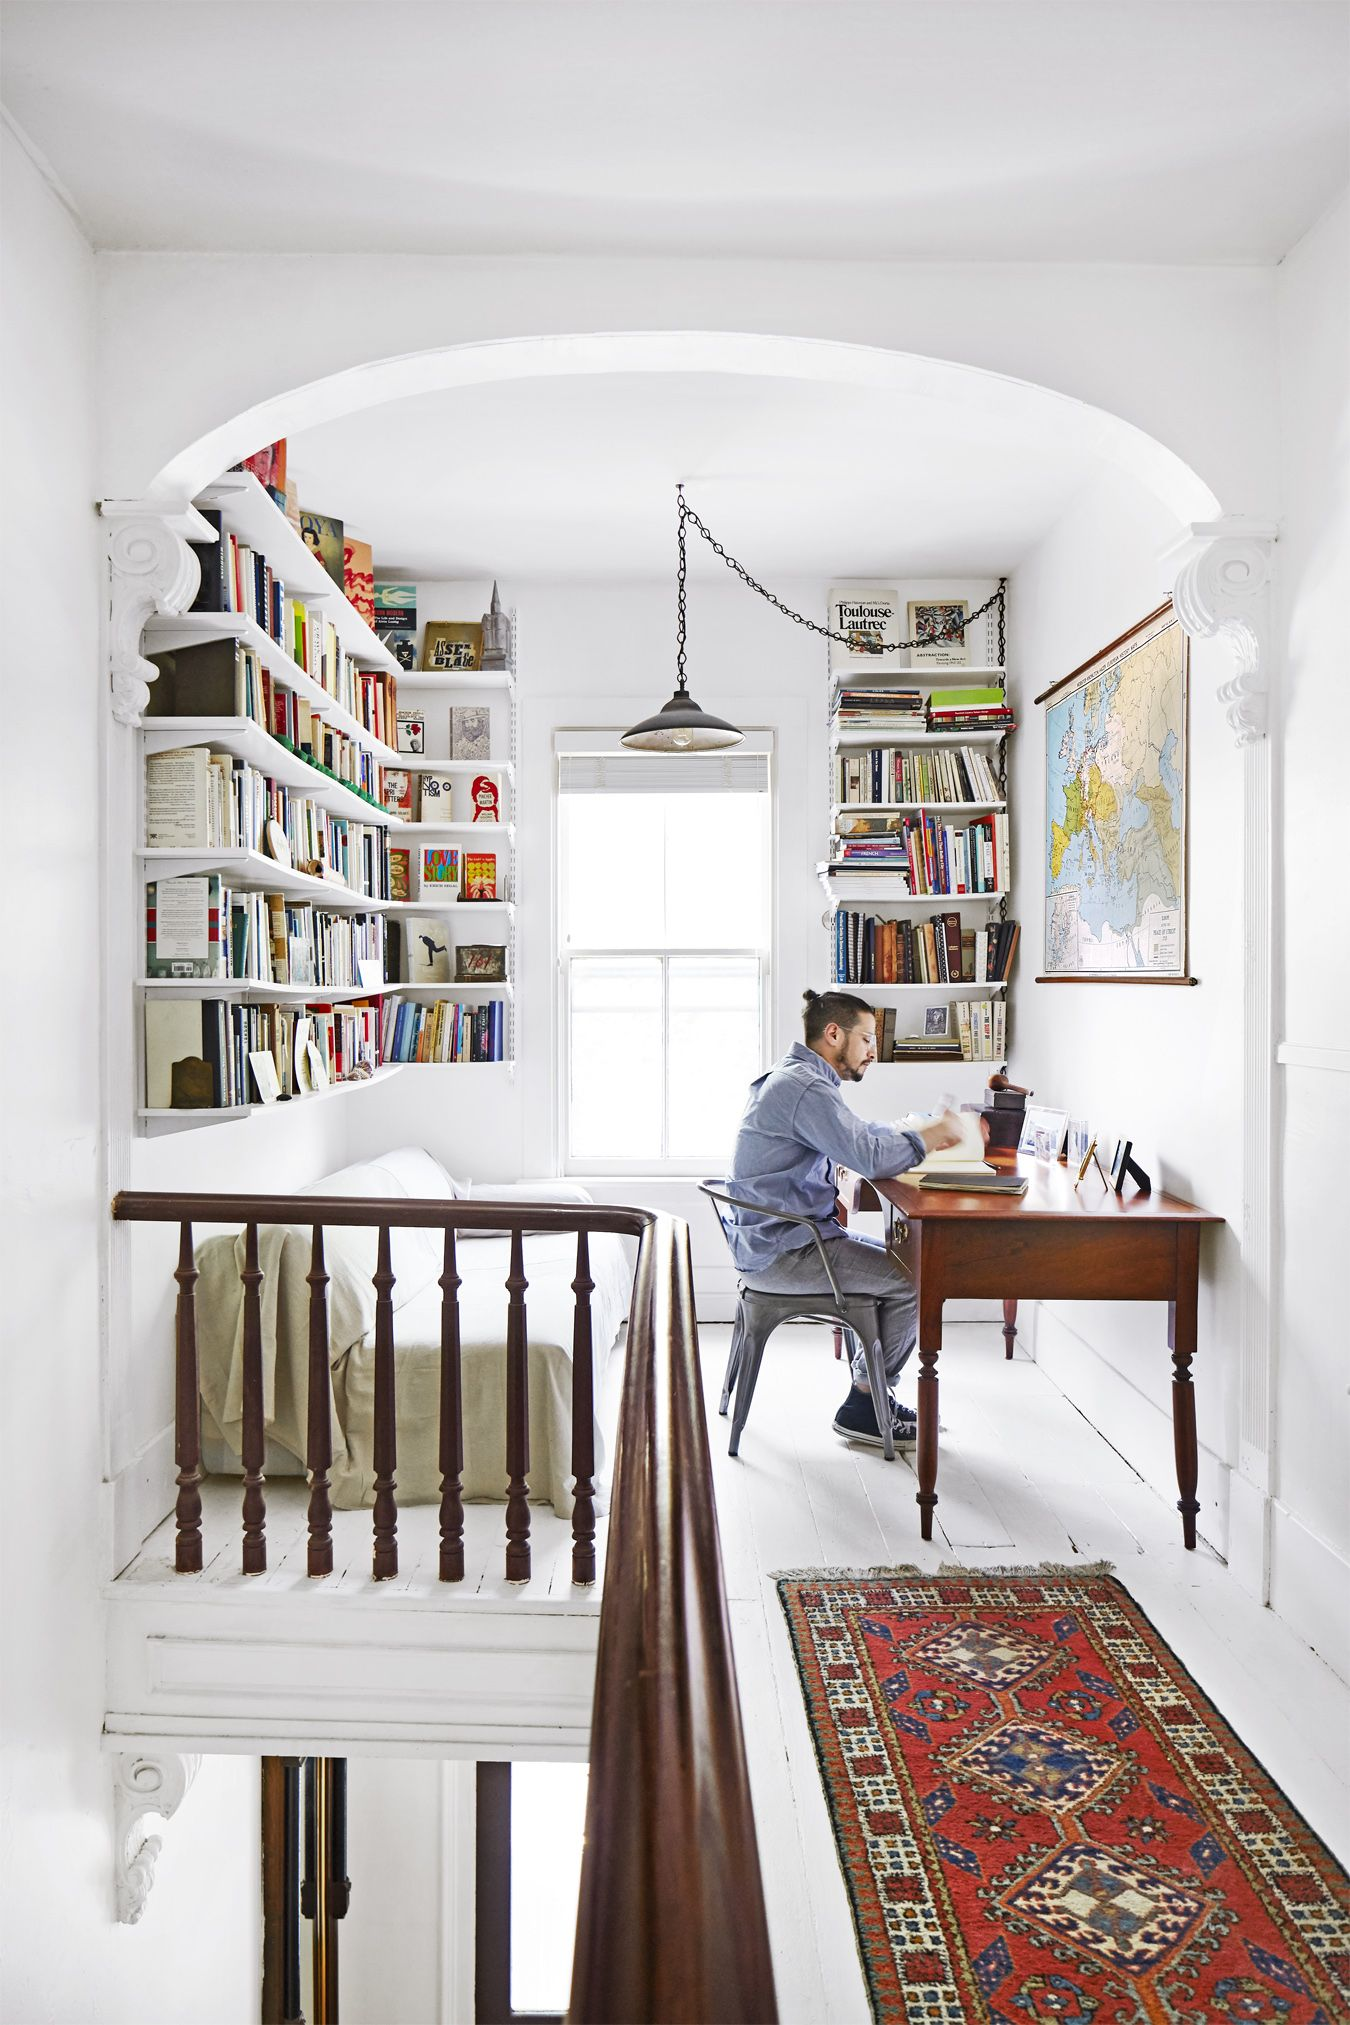 How Do You Design Home For Someone With >> See How One Couple Turned A Dated And Cluttered 1850s